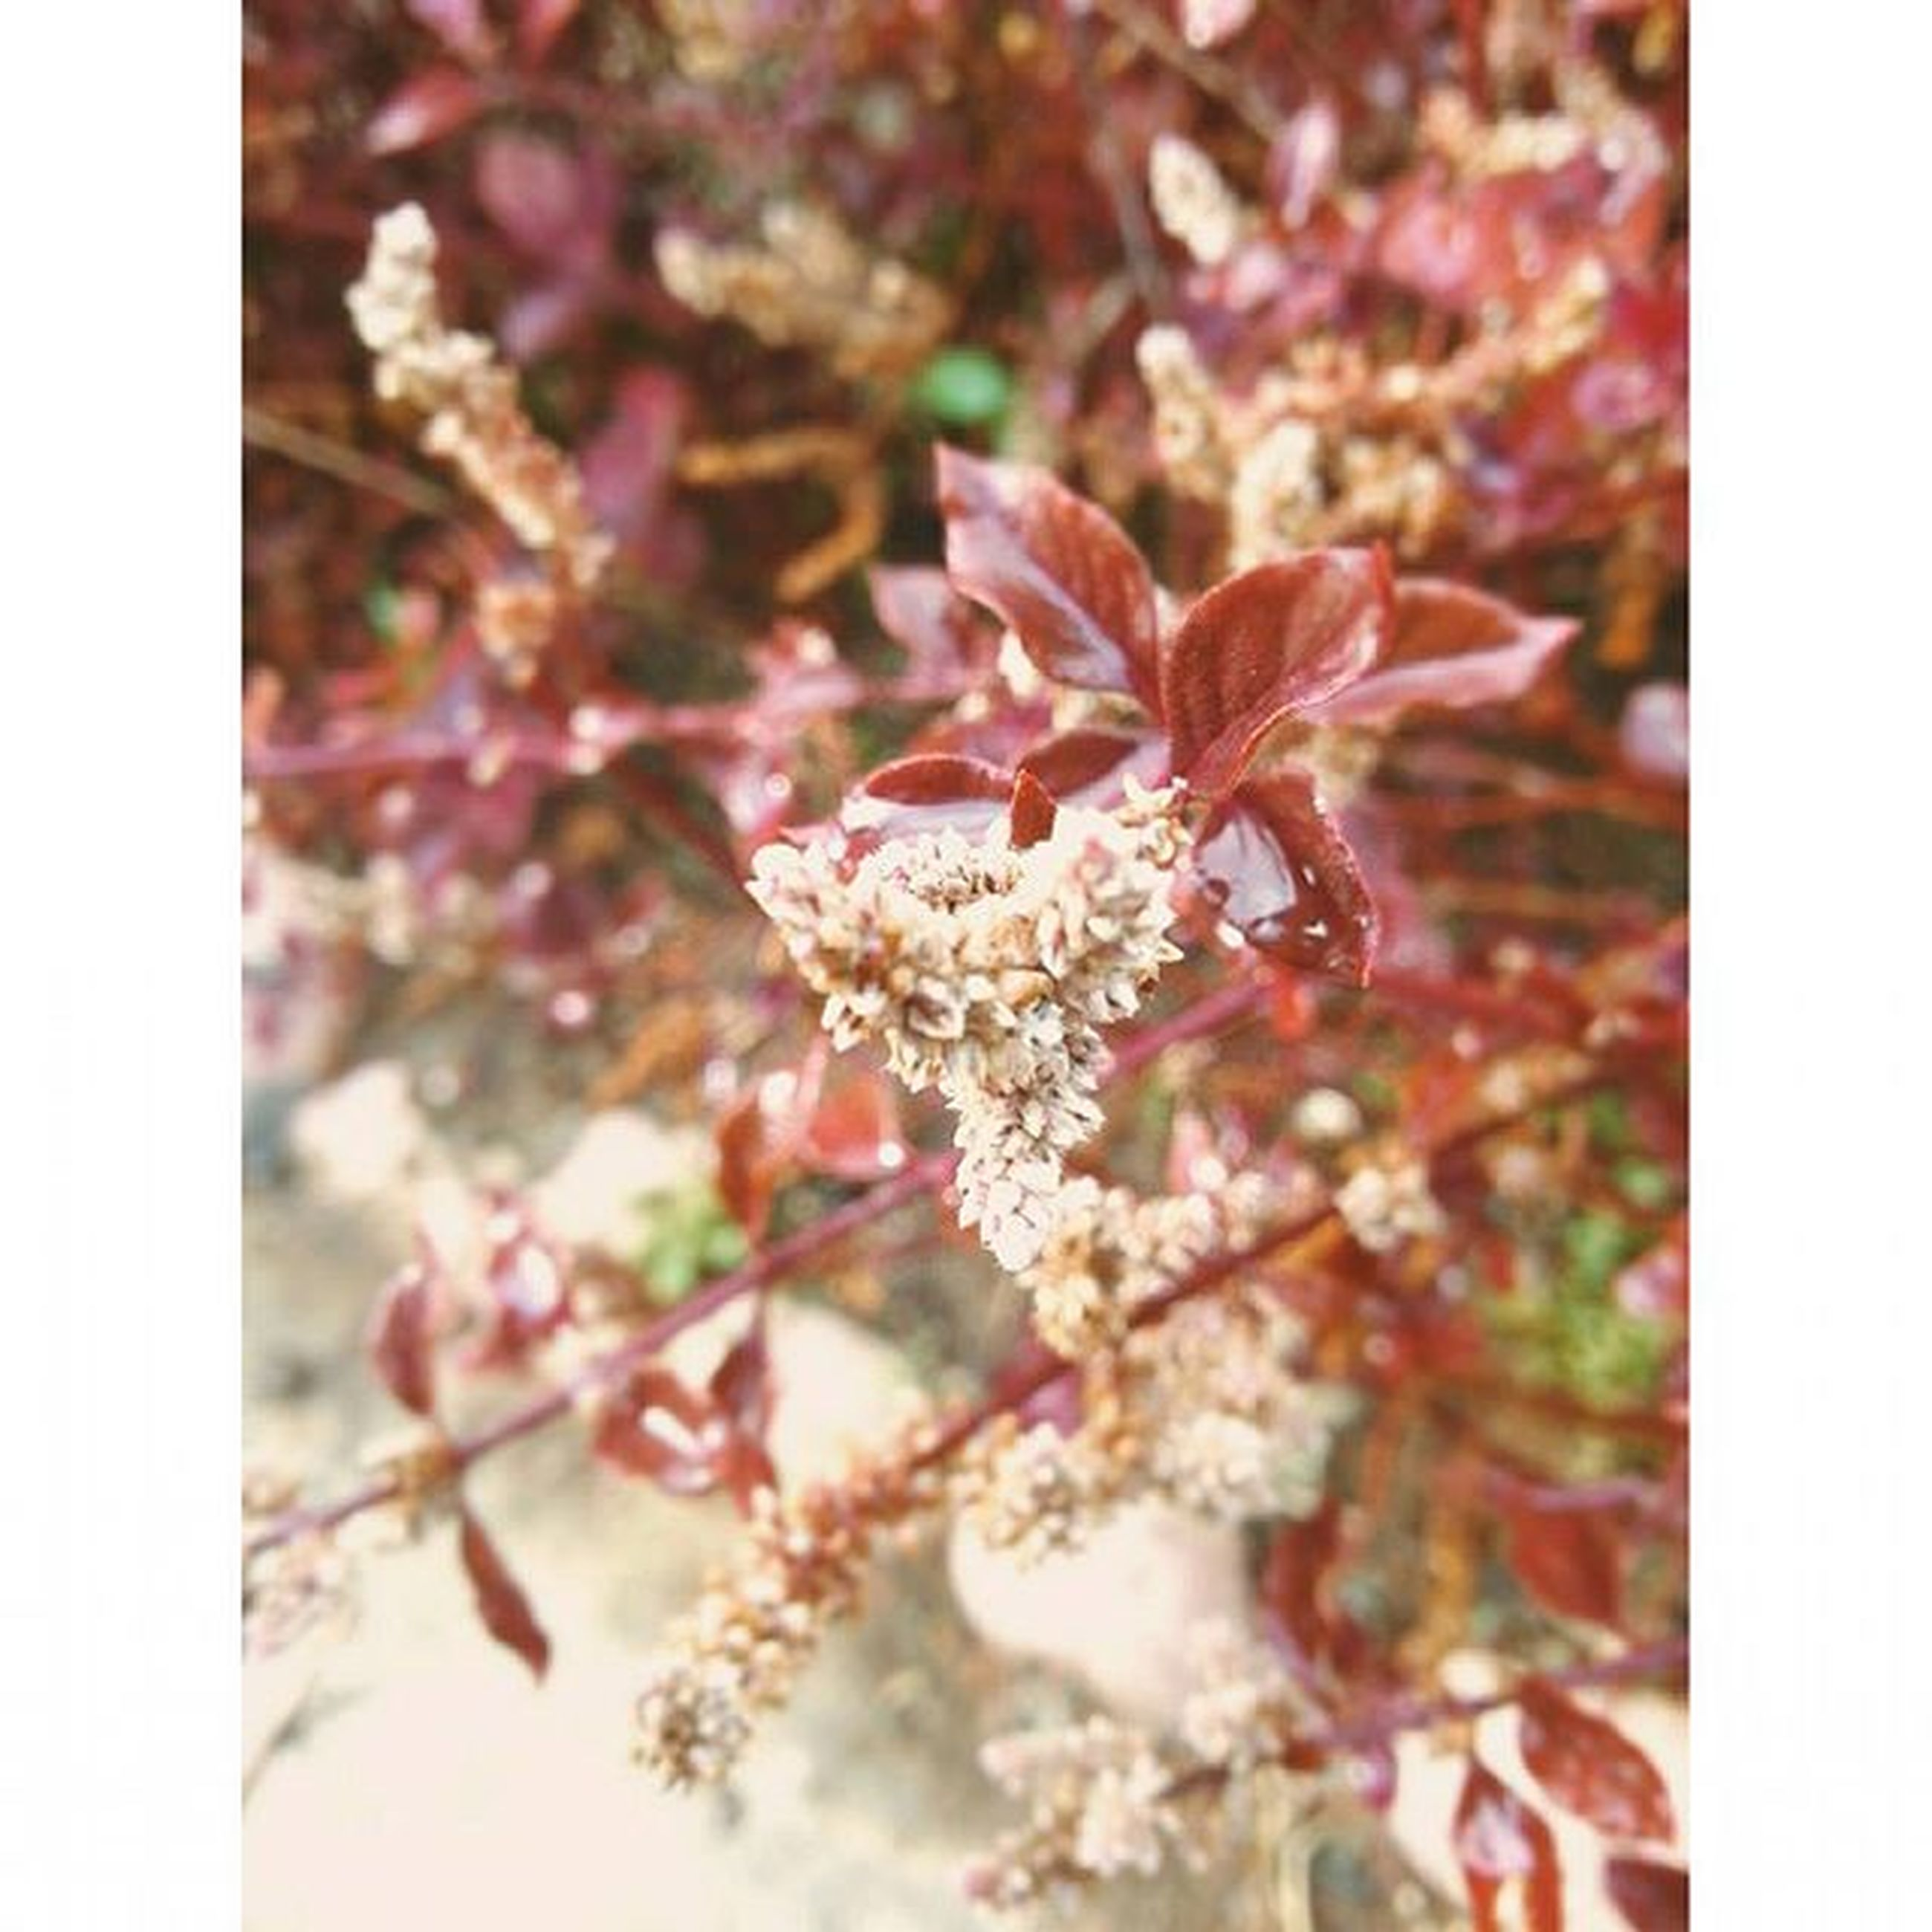 flower, freshness, transfer print, fragility, growth, beauty in nature, auto post production filter, petal, nature, close-up, blossom, branch, focus on foreground, flower head, pink color, season, tree, in bloom, blooming, selective focus